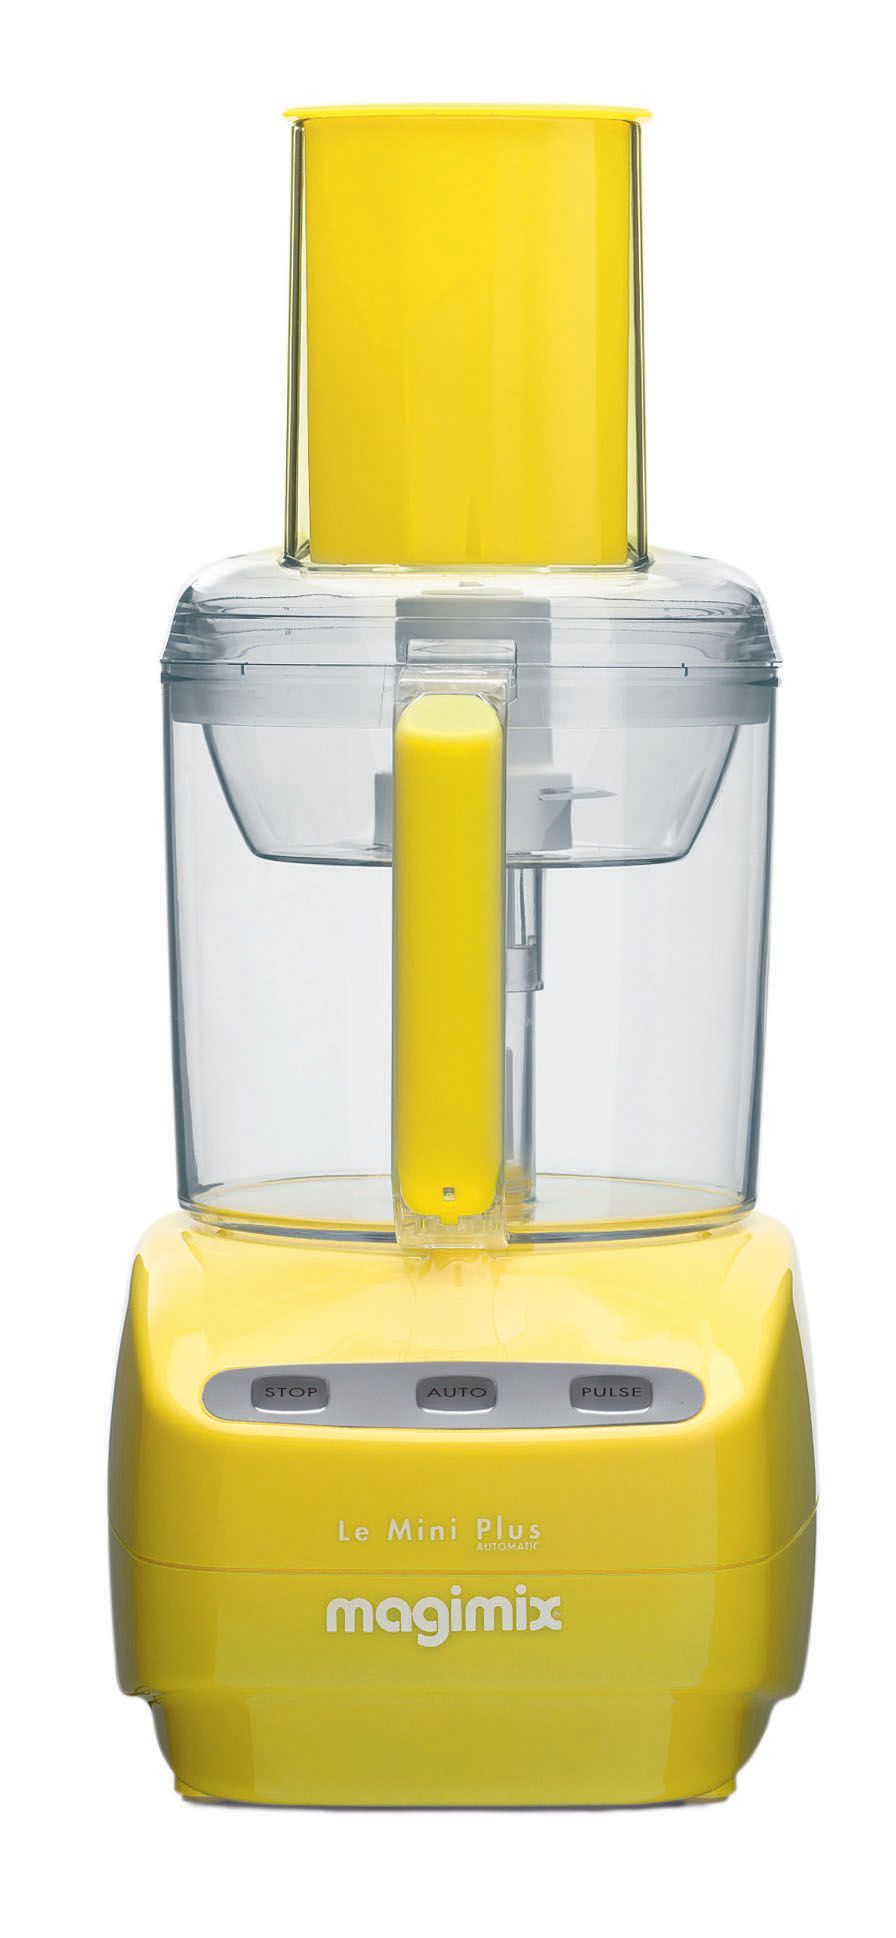 Le Mini Plus Food Processor Yellow 18235